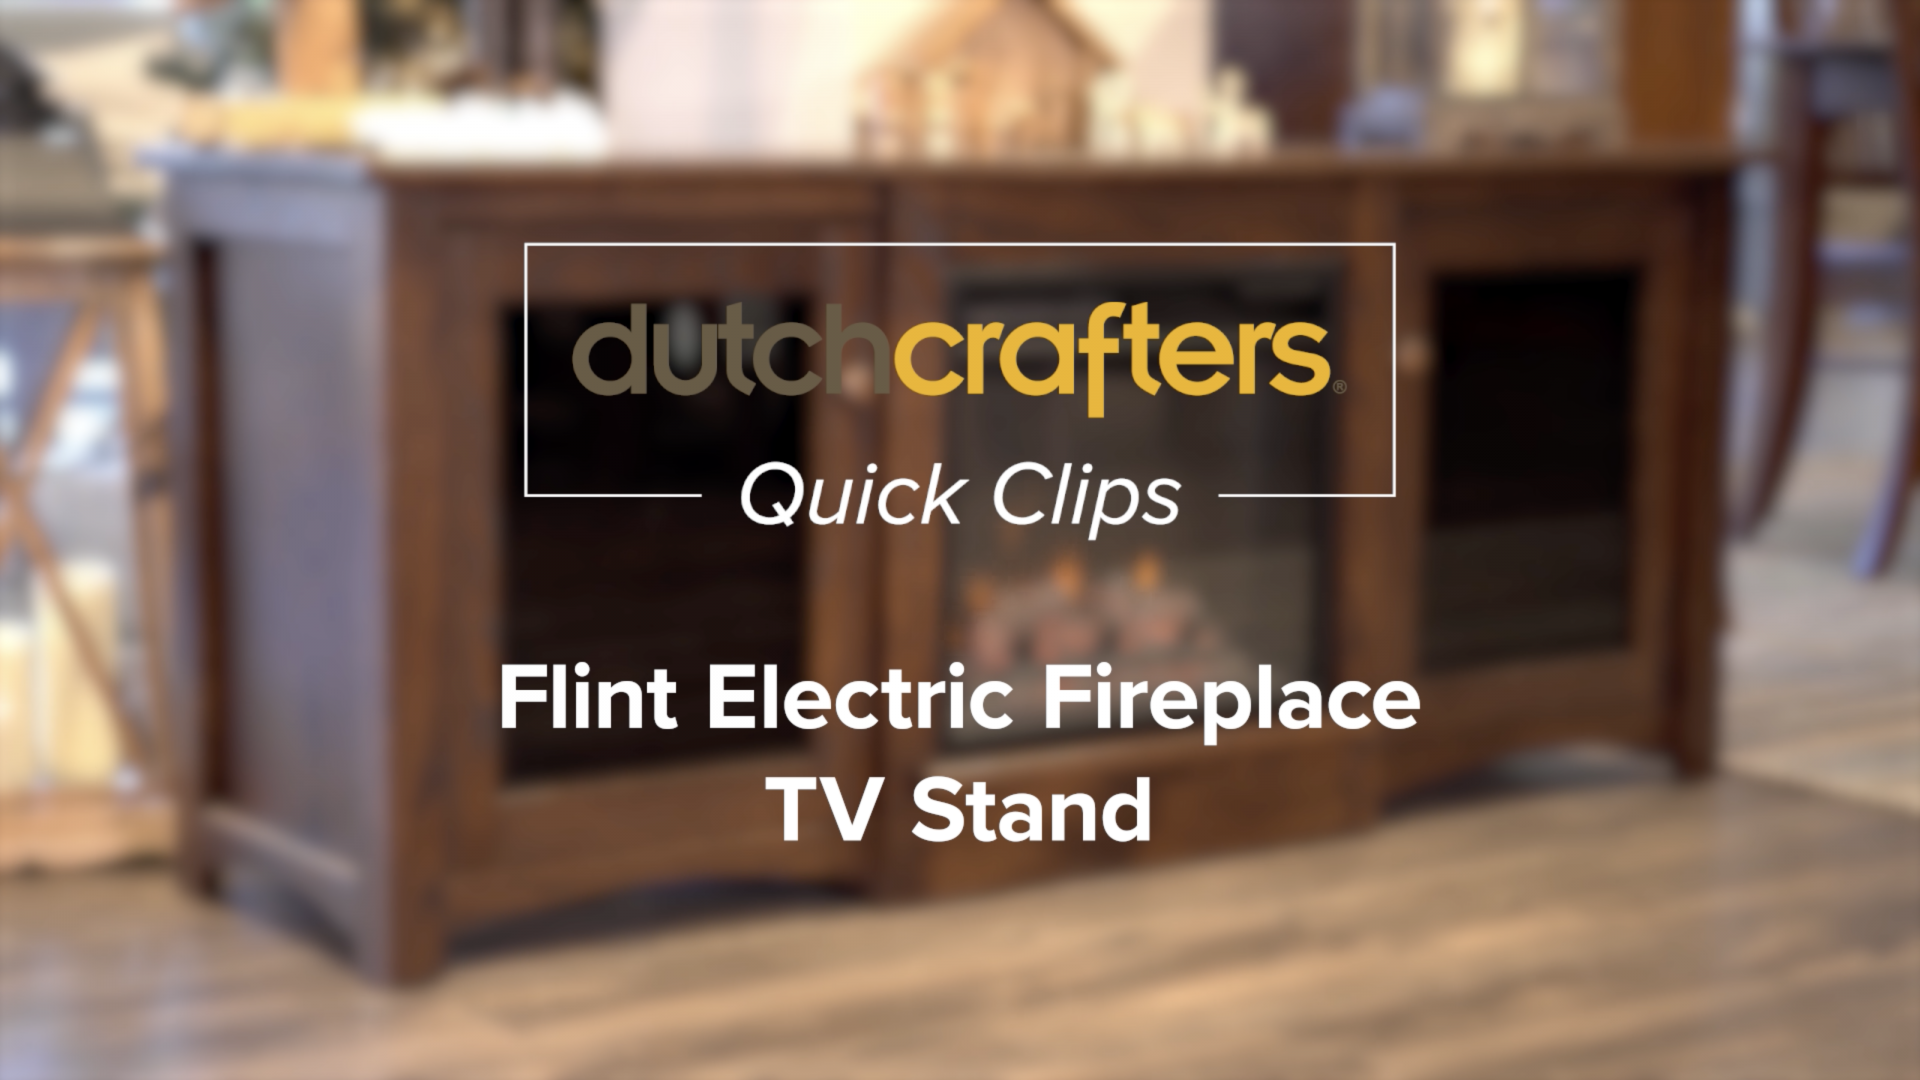 Flint-Electric-Fireplace-TV-Stand